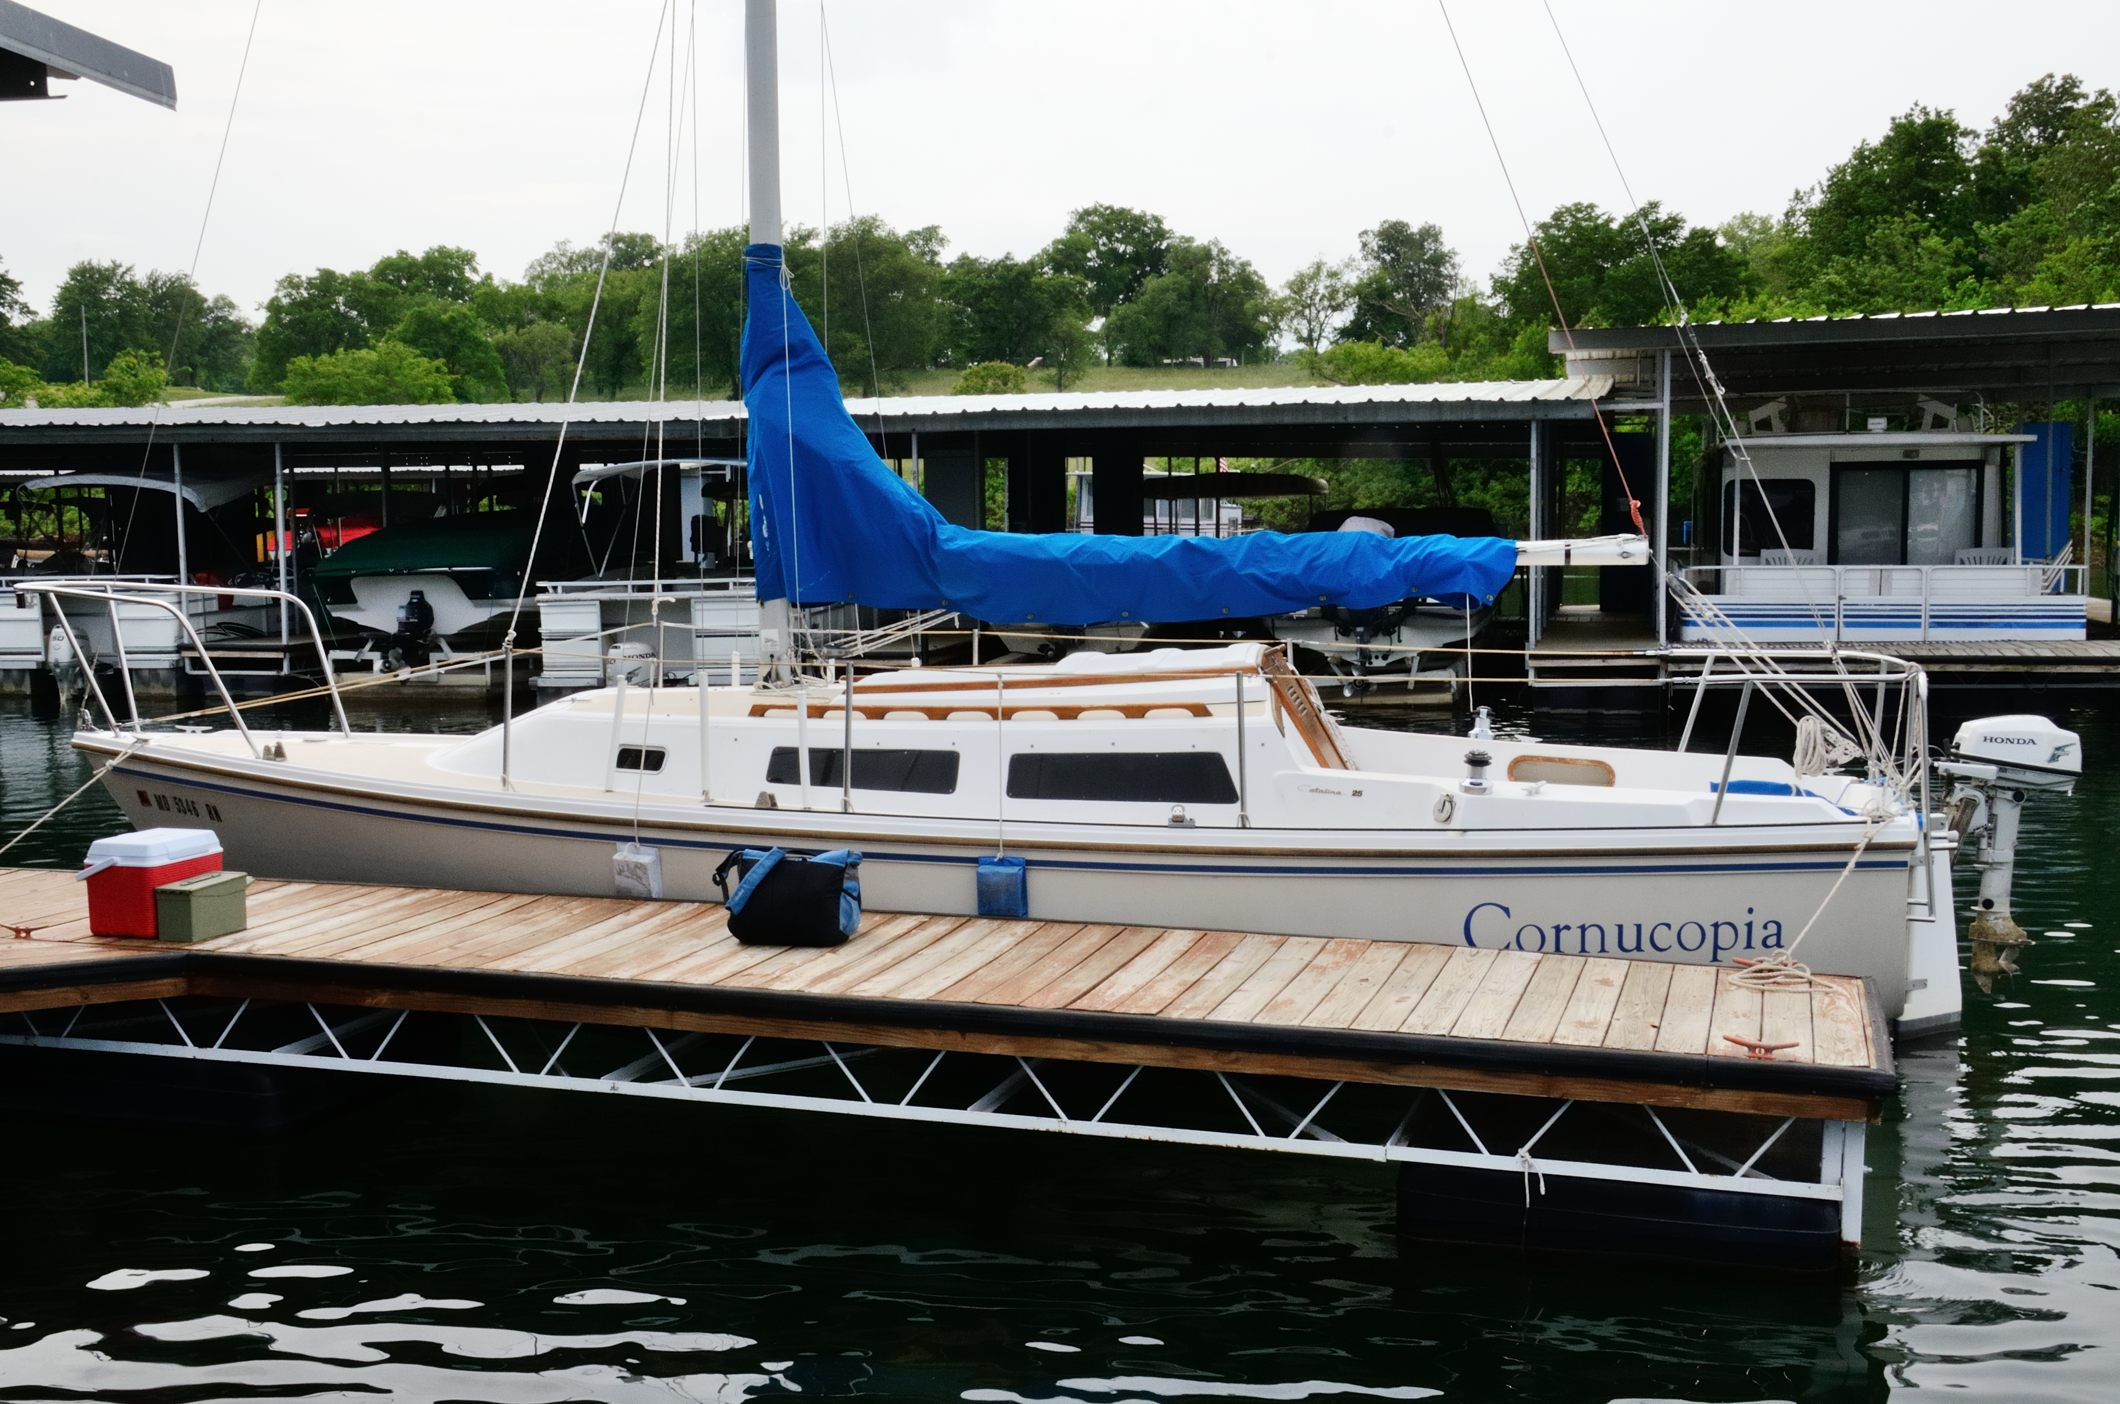 Photograph of the Catalina 25 - Cornucopia At Stockton State Park Marina